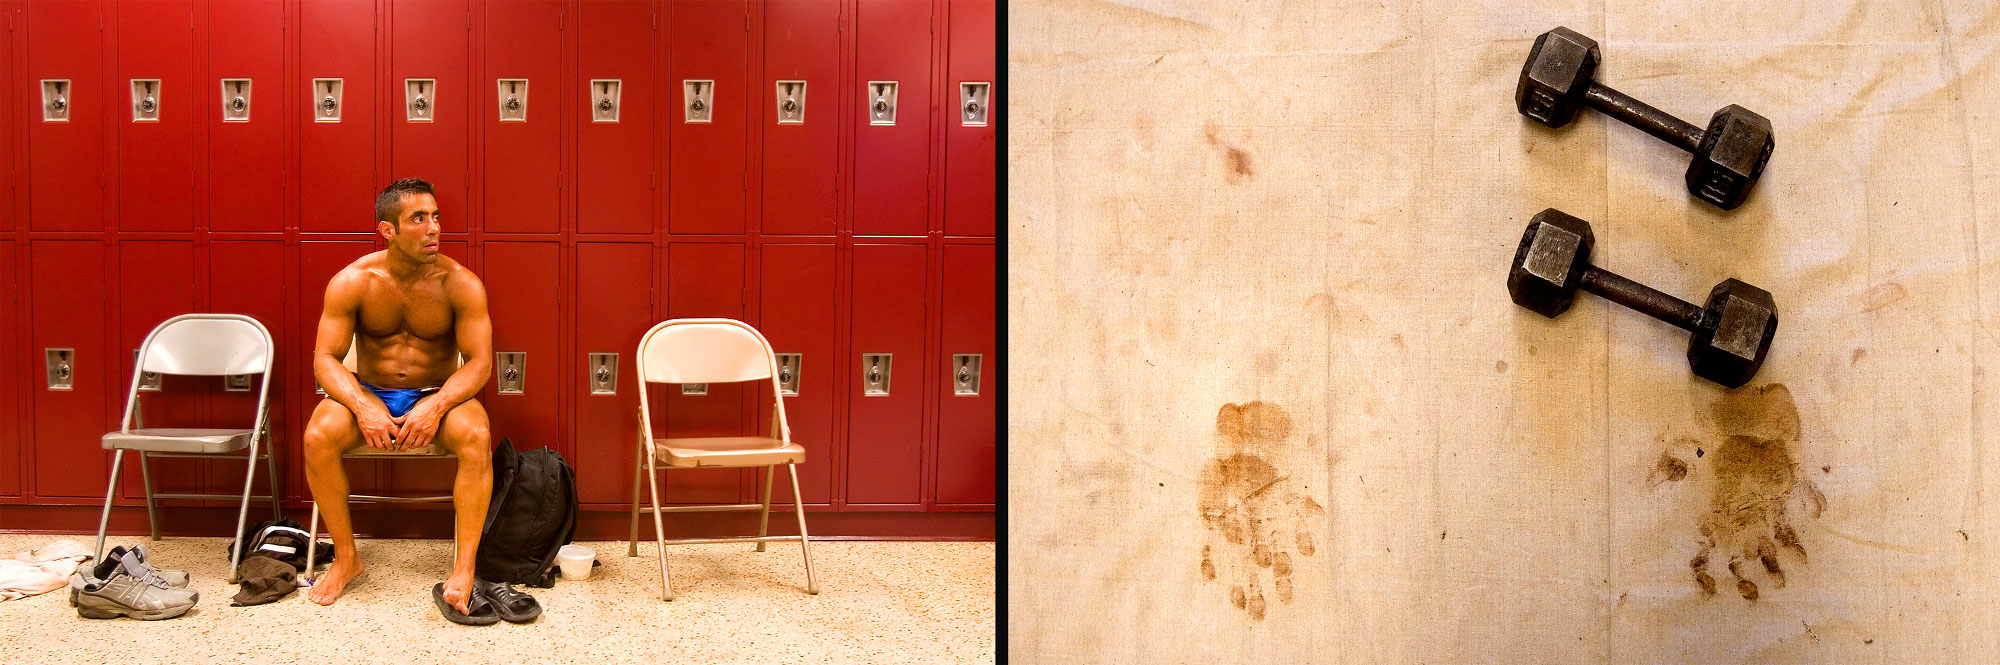 Left image: George Hatzigeorgio, waits by a row of lockers backstage before competing in the Potomac Cup bodybuilding competition in Woodbridge, VA. This was his first competition. Right image: A pair of weights lay on a canvas marked with self-tanner handprints backstage to be used by competitors before they perform their routines.